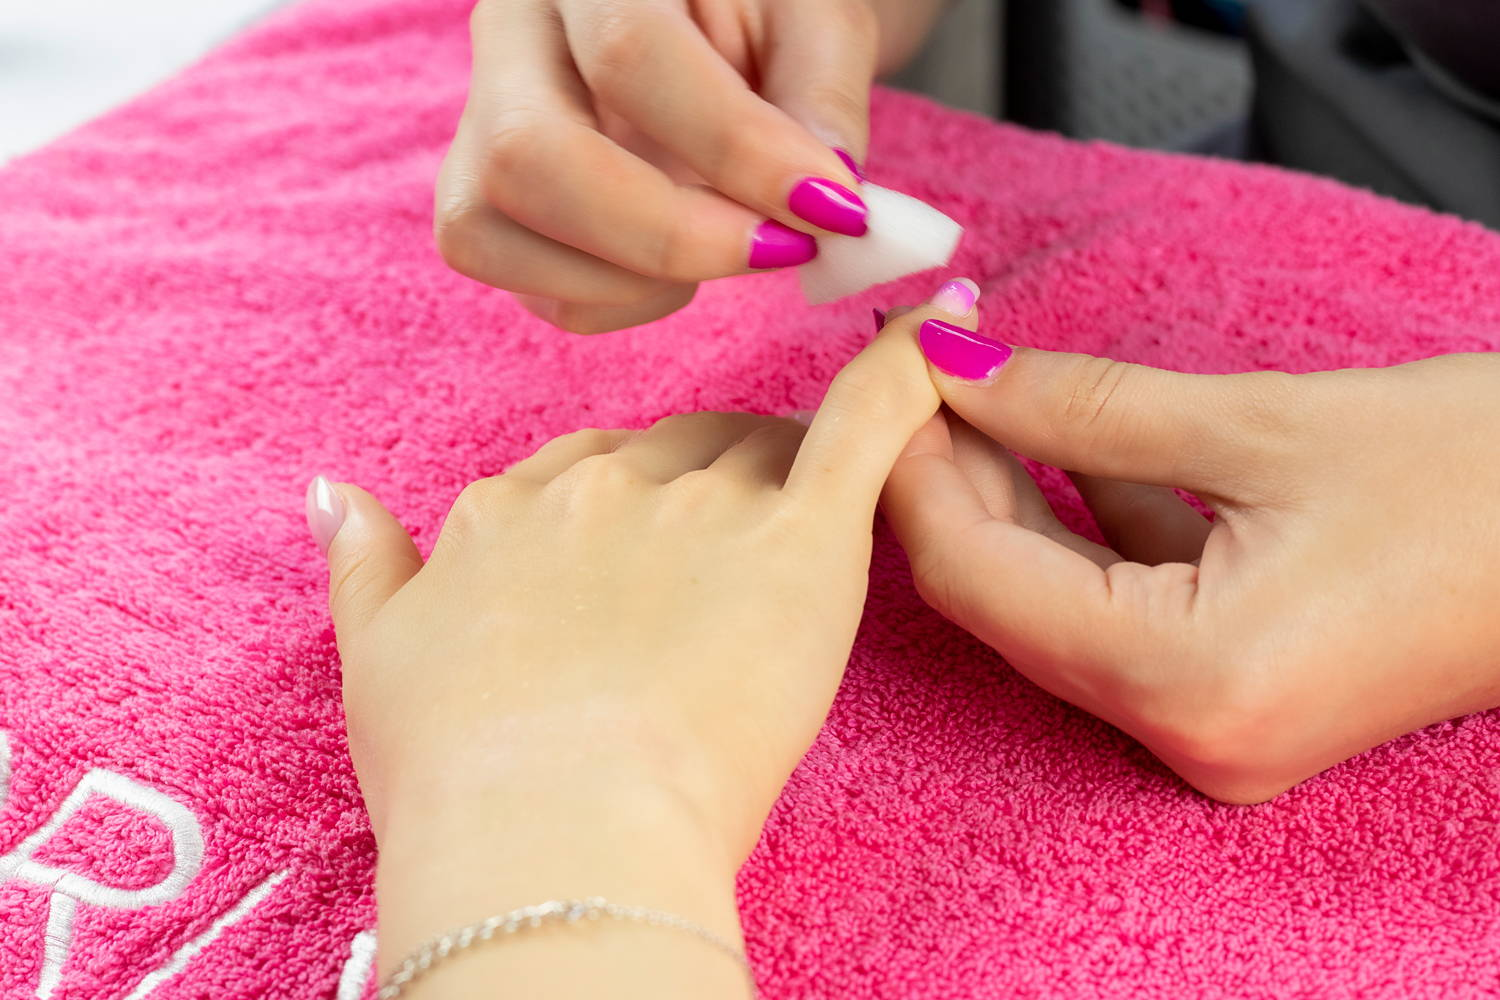 Nail technician using a sponge to create a nail fade design